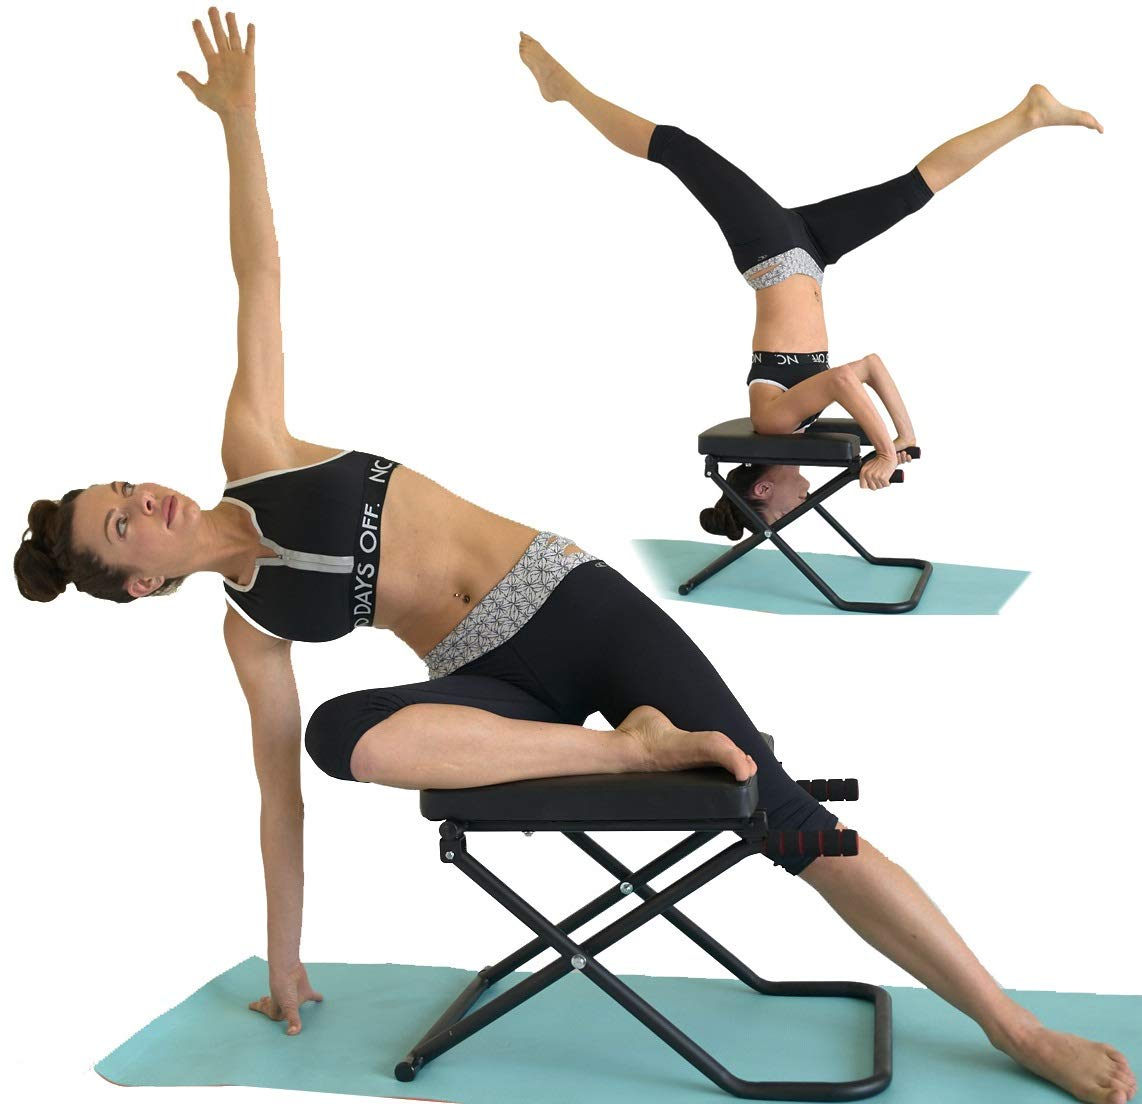 SISYAMA Fitness Yoga Headstand Chair Inversion Bench Workout Manual Longer Wider Bigger Feet Up Trainer